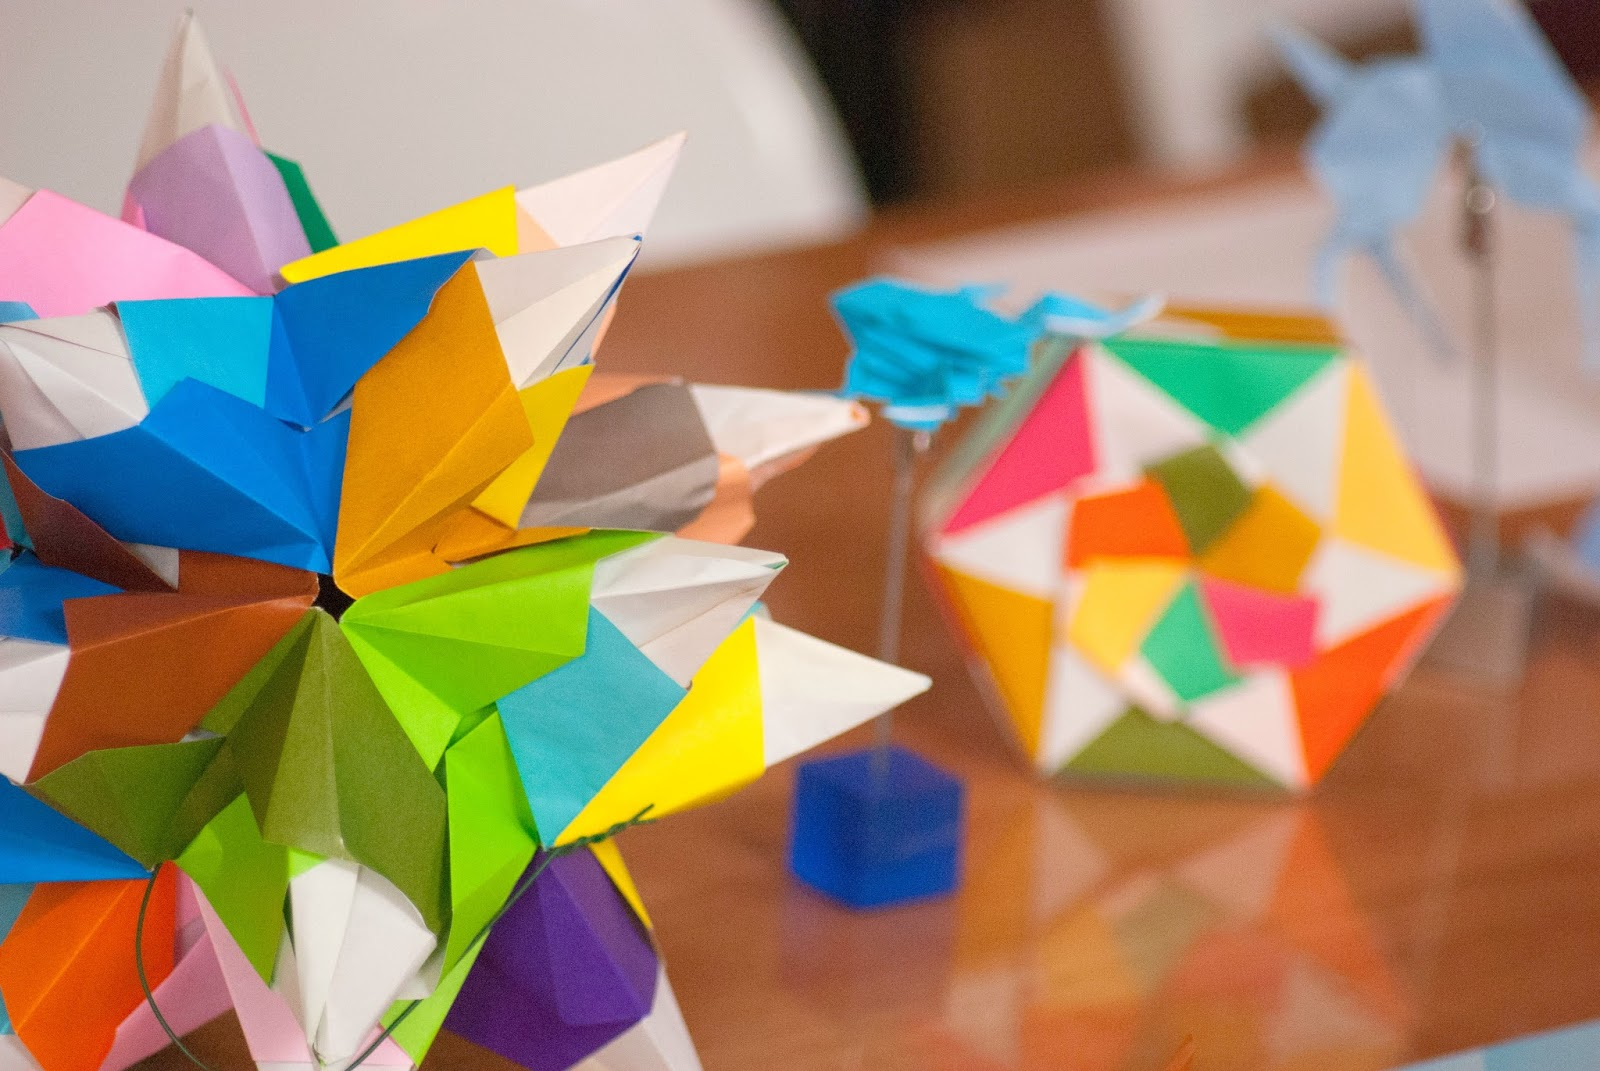 colourful origami - 100 Ways to 30, paper origami, crafts, mindfoldness, mindful origami, arts, blogging, events